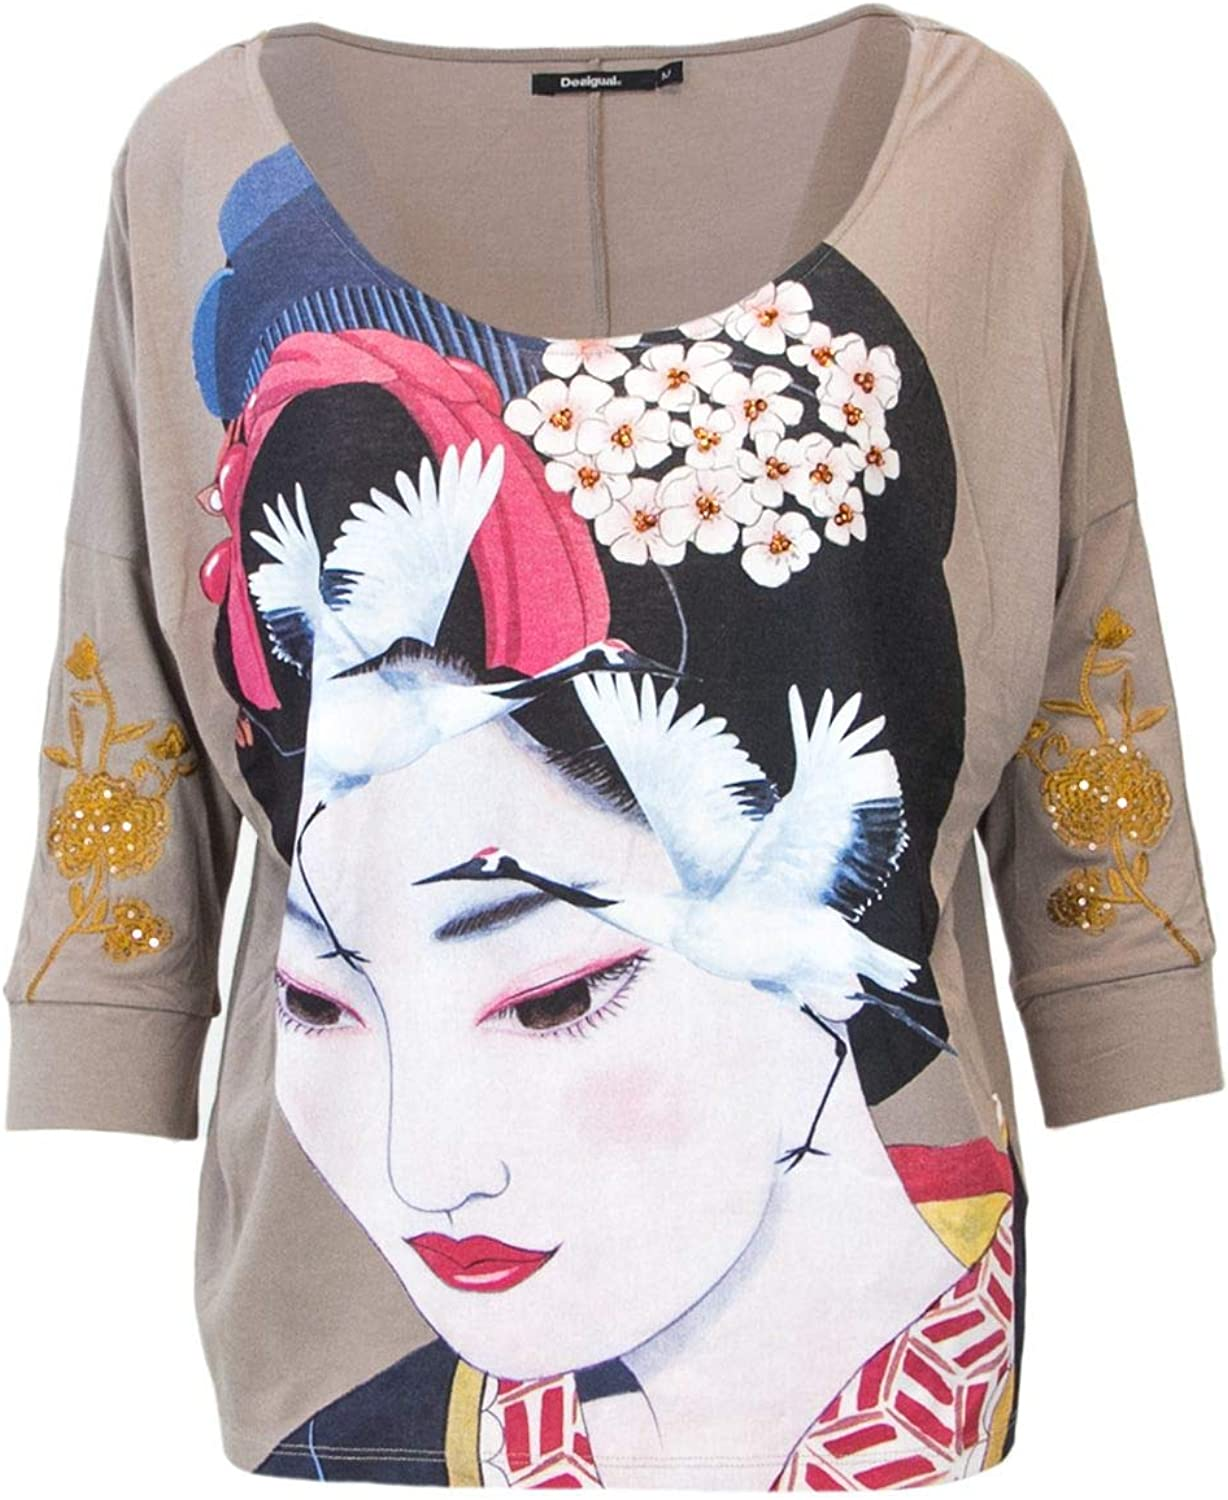 Desigual Women's 18WWTKBZBEIGE Beige Cotton Blouse